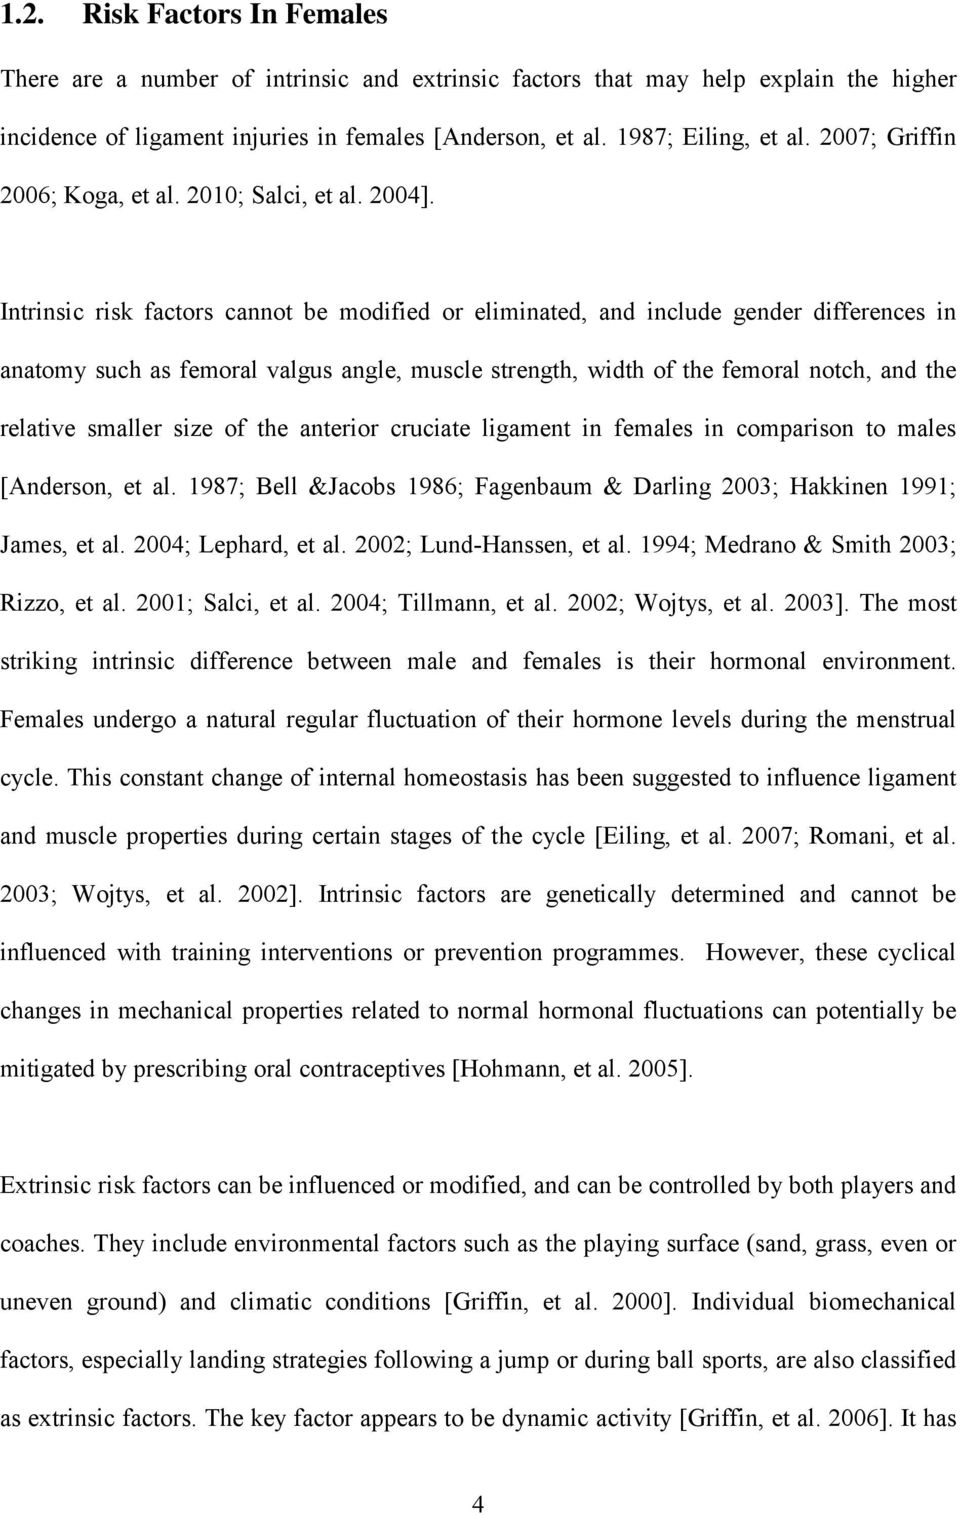 Intrinsic risk factors cannot be modified or eliminated, and include gender differences in anatomy such as femoral valgus angle, muscle strength, width of the femoral notch, and the relative smaller